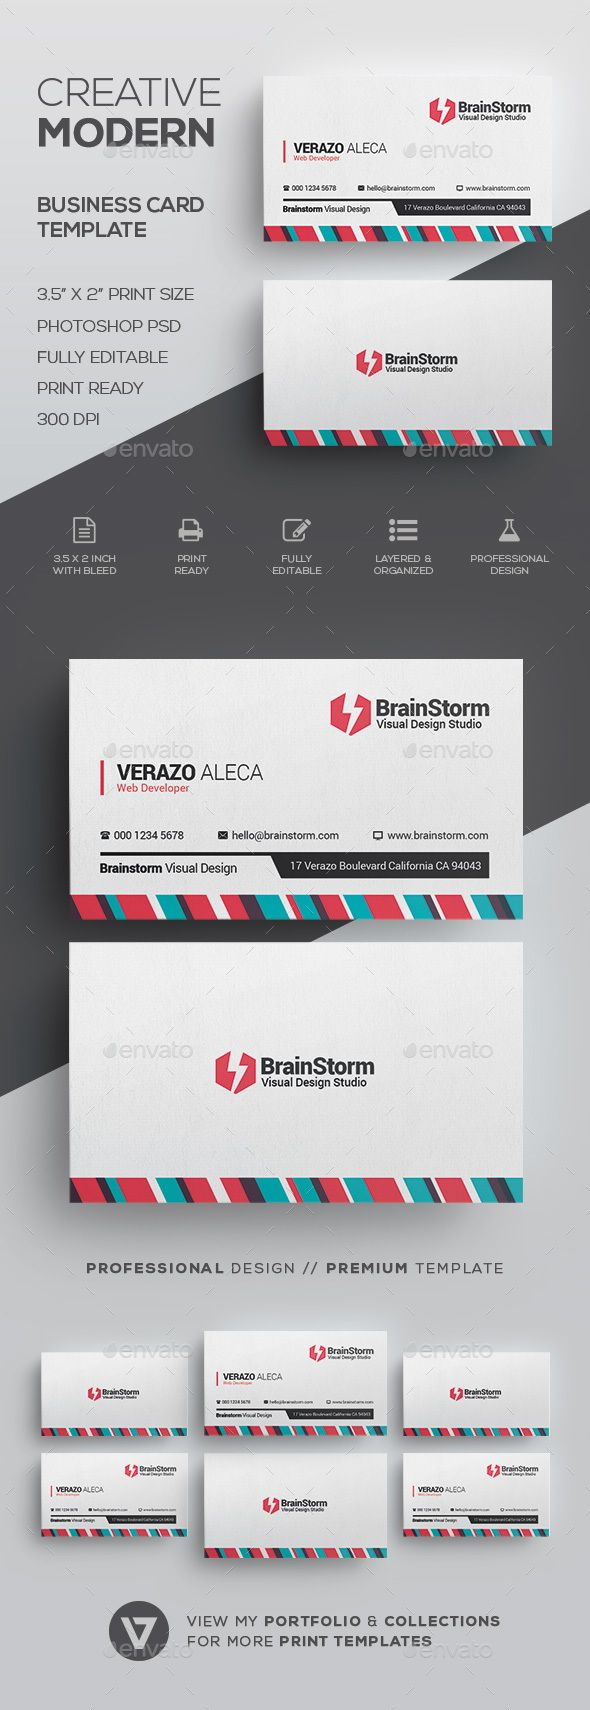 Clean Creative Business Card Template by verazo Need more high quality business card? View my Business Card Templates Collection OR Save Money! Buy Business Card Bundle for only